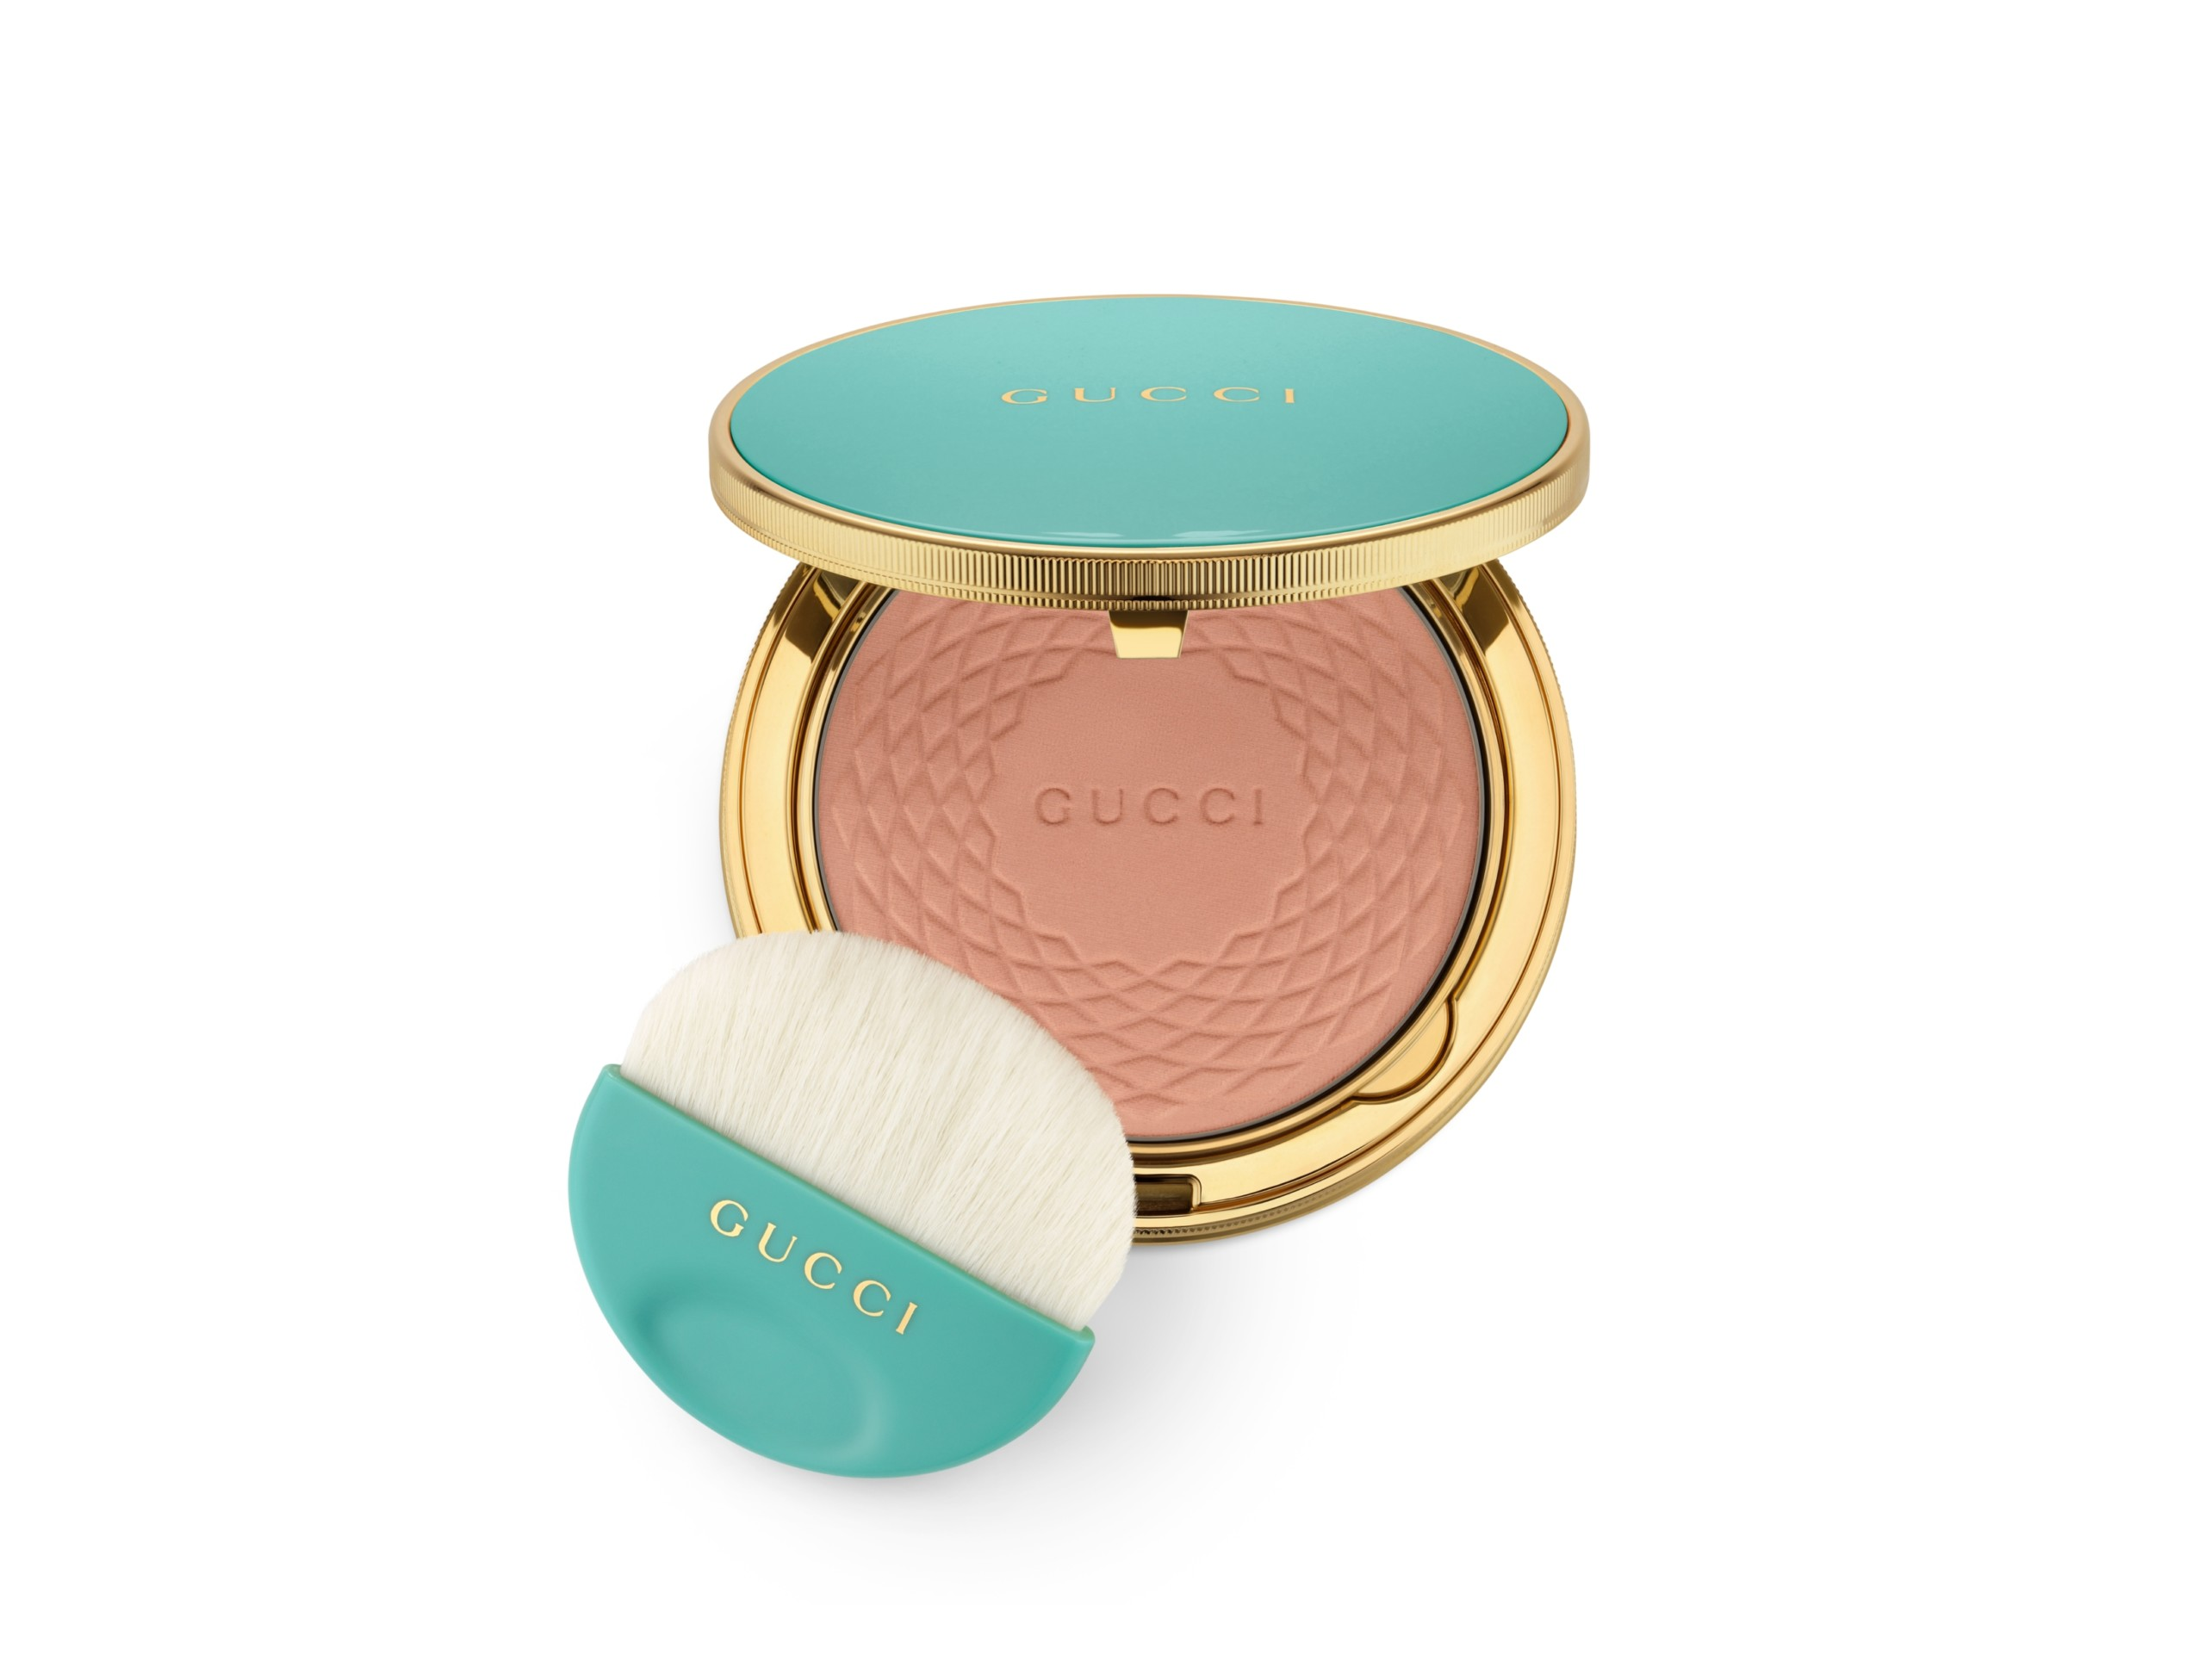 Gucci Poudre make-up